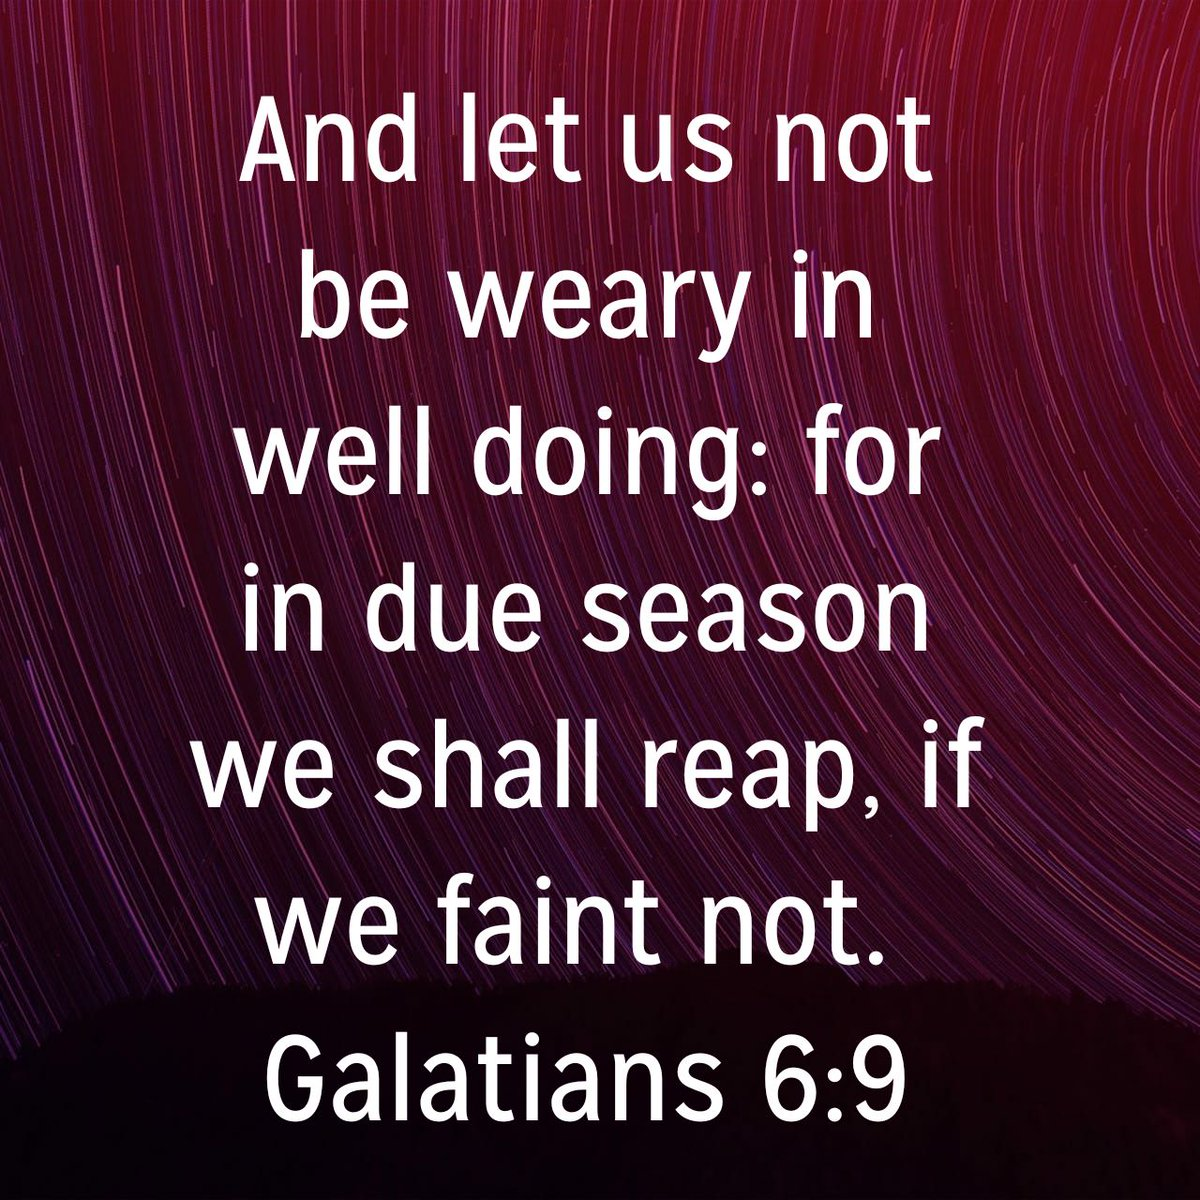 And let us not be weary in well doing: for in due season we shall reap, if we faint not. Galatians 6:9 KJV